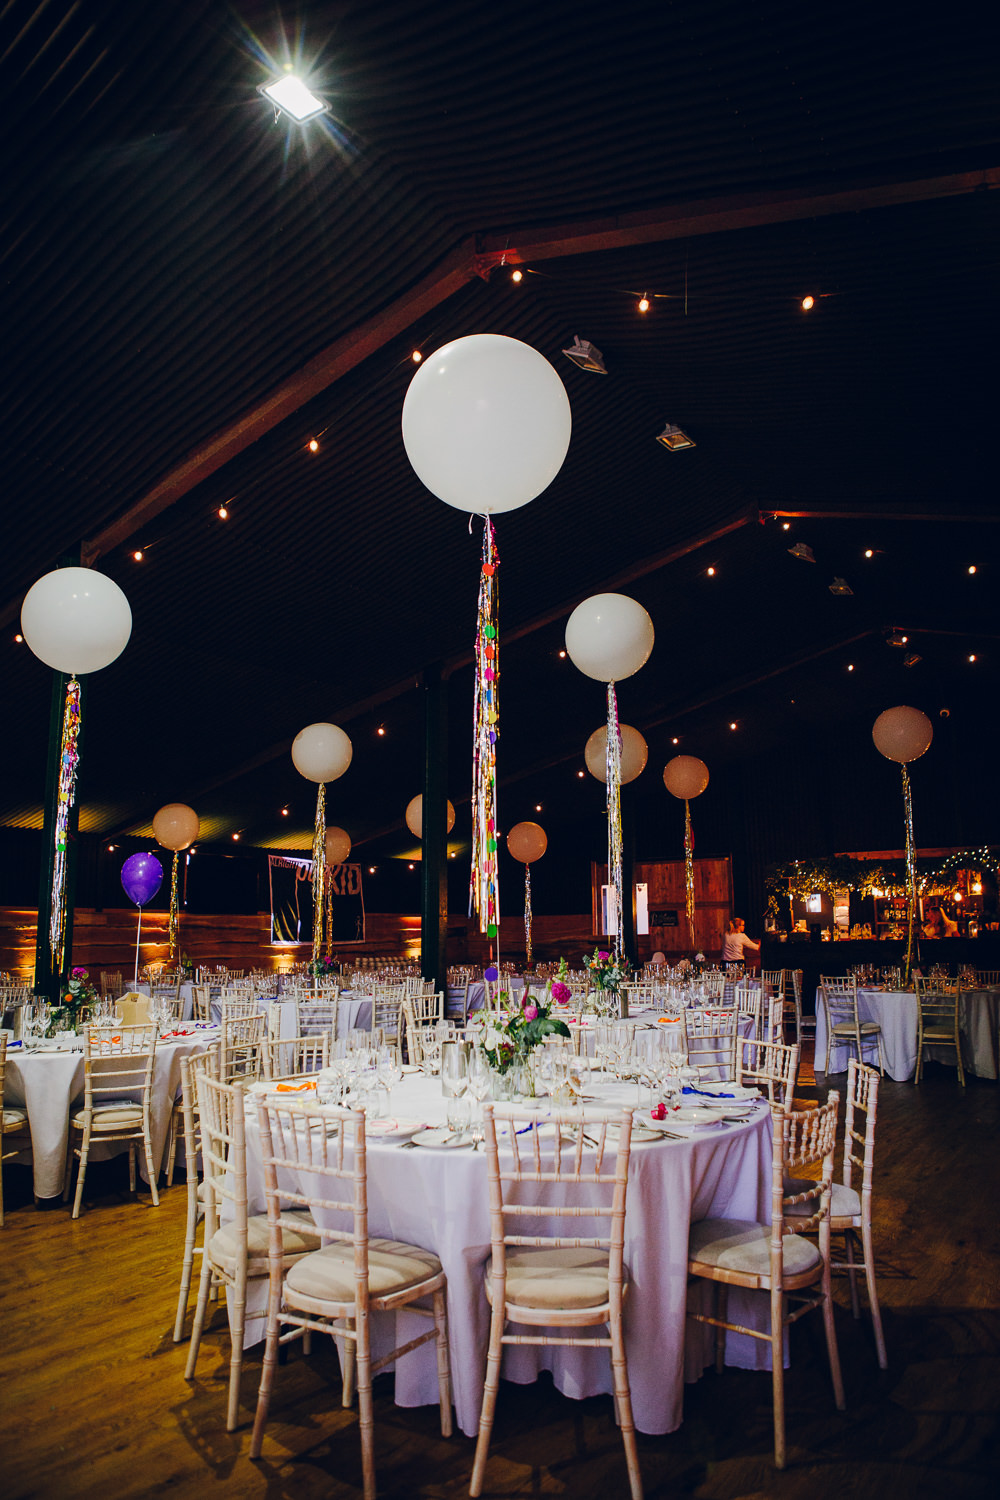 Giant Oversized Helium Balloons Foil Tassel Tatton Wedding Stock Farm Barn Amy B Photography